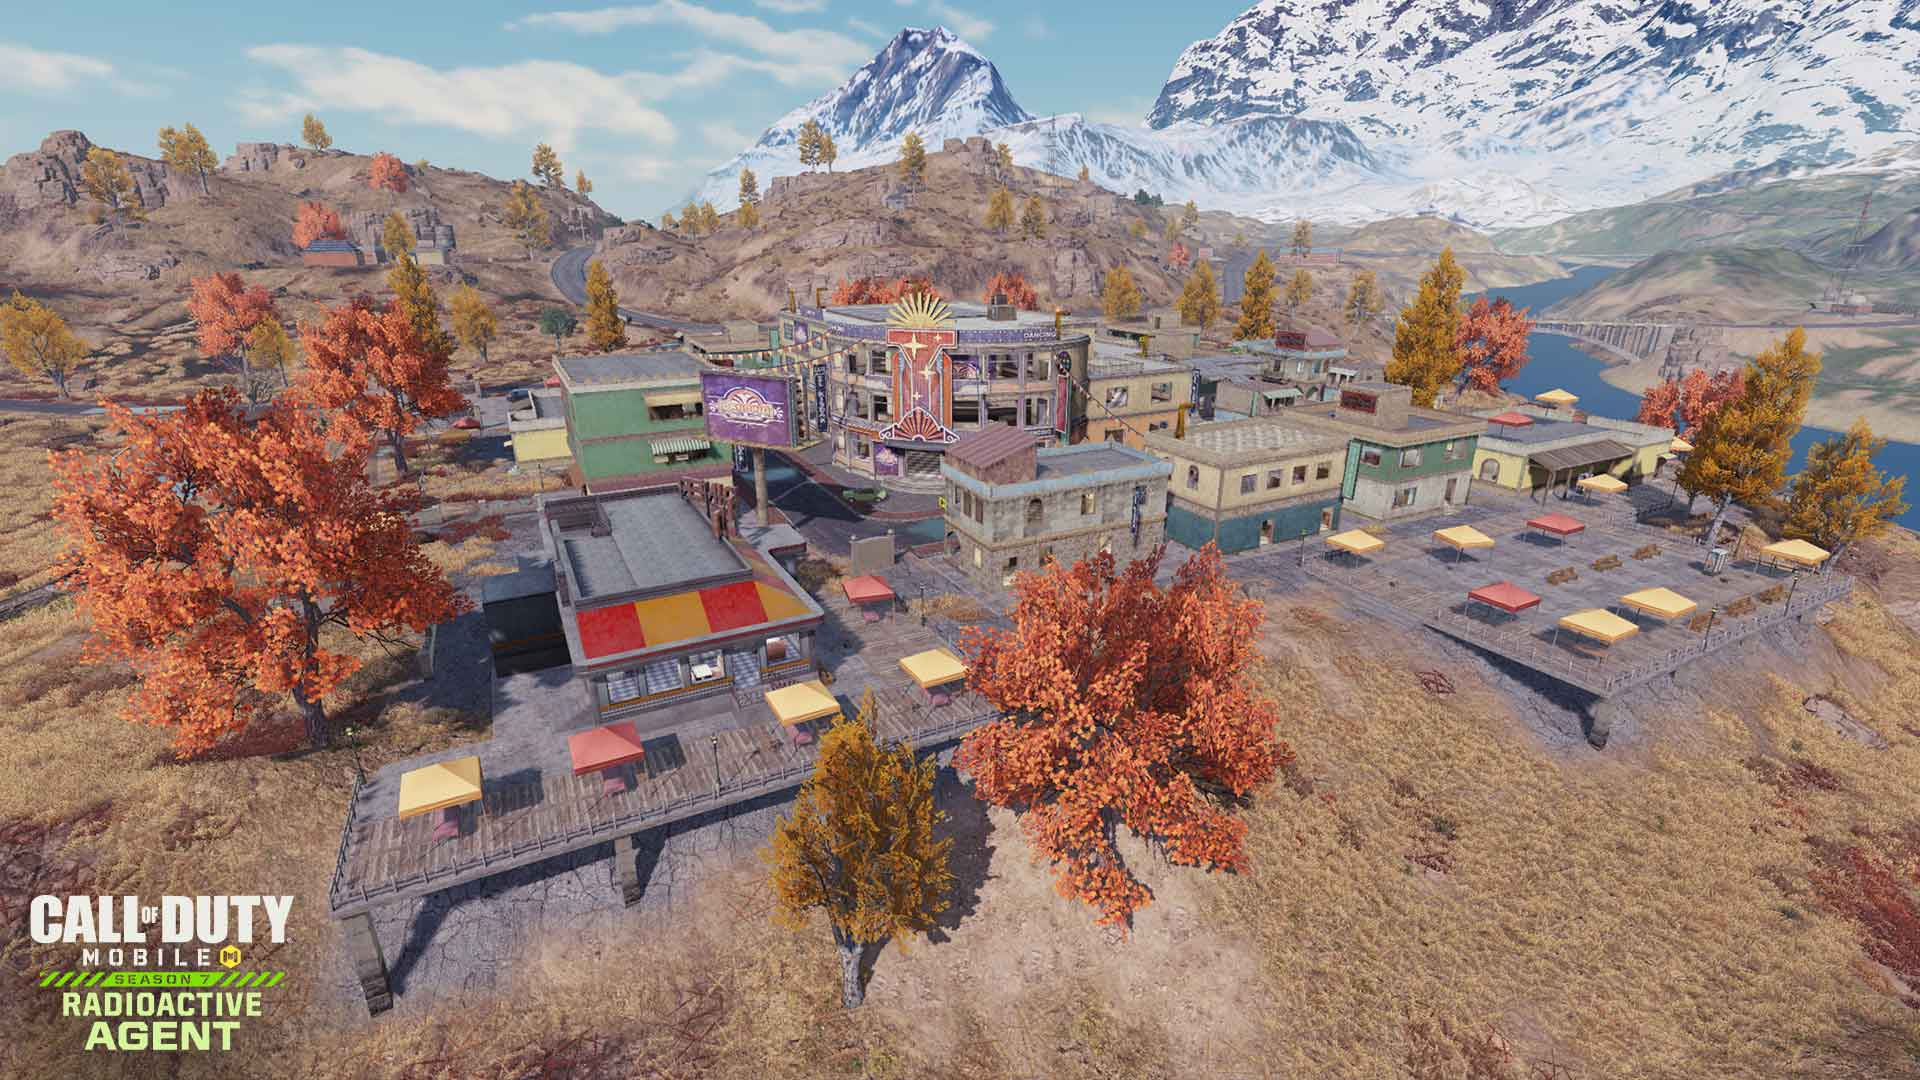 A Grand Tour of the Call of Duty®: Mobile Battle Royale Map Expansion - Image 7